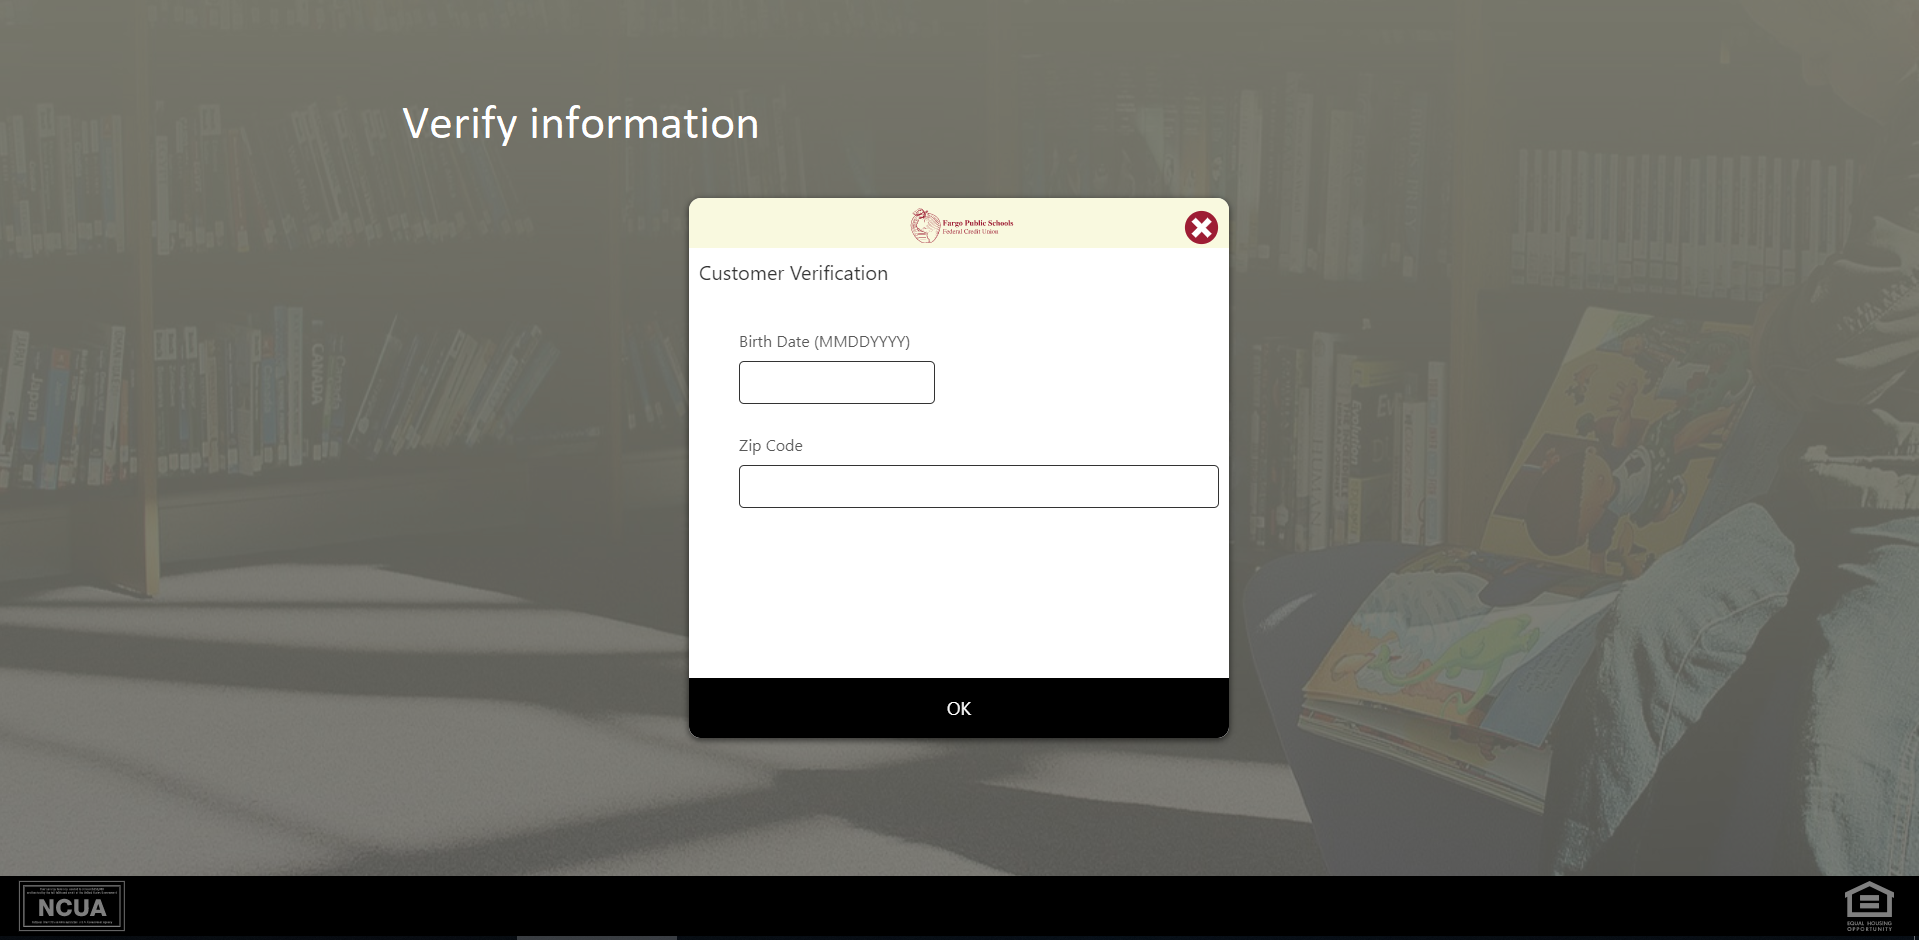 Screen shot of information verification screen - Verify your information